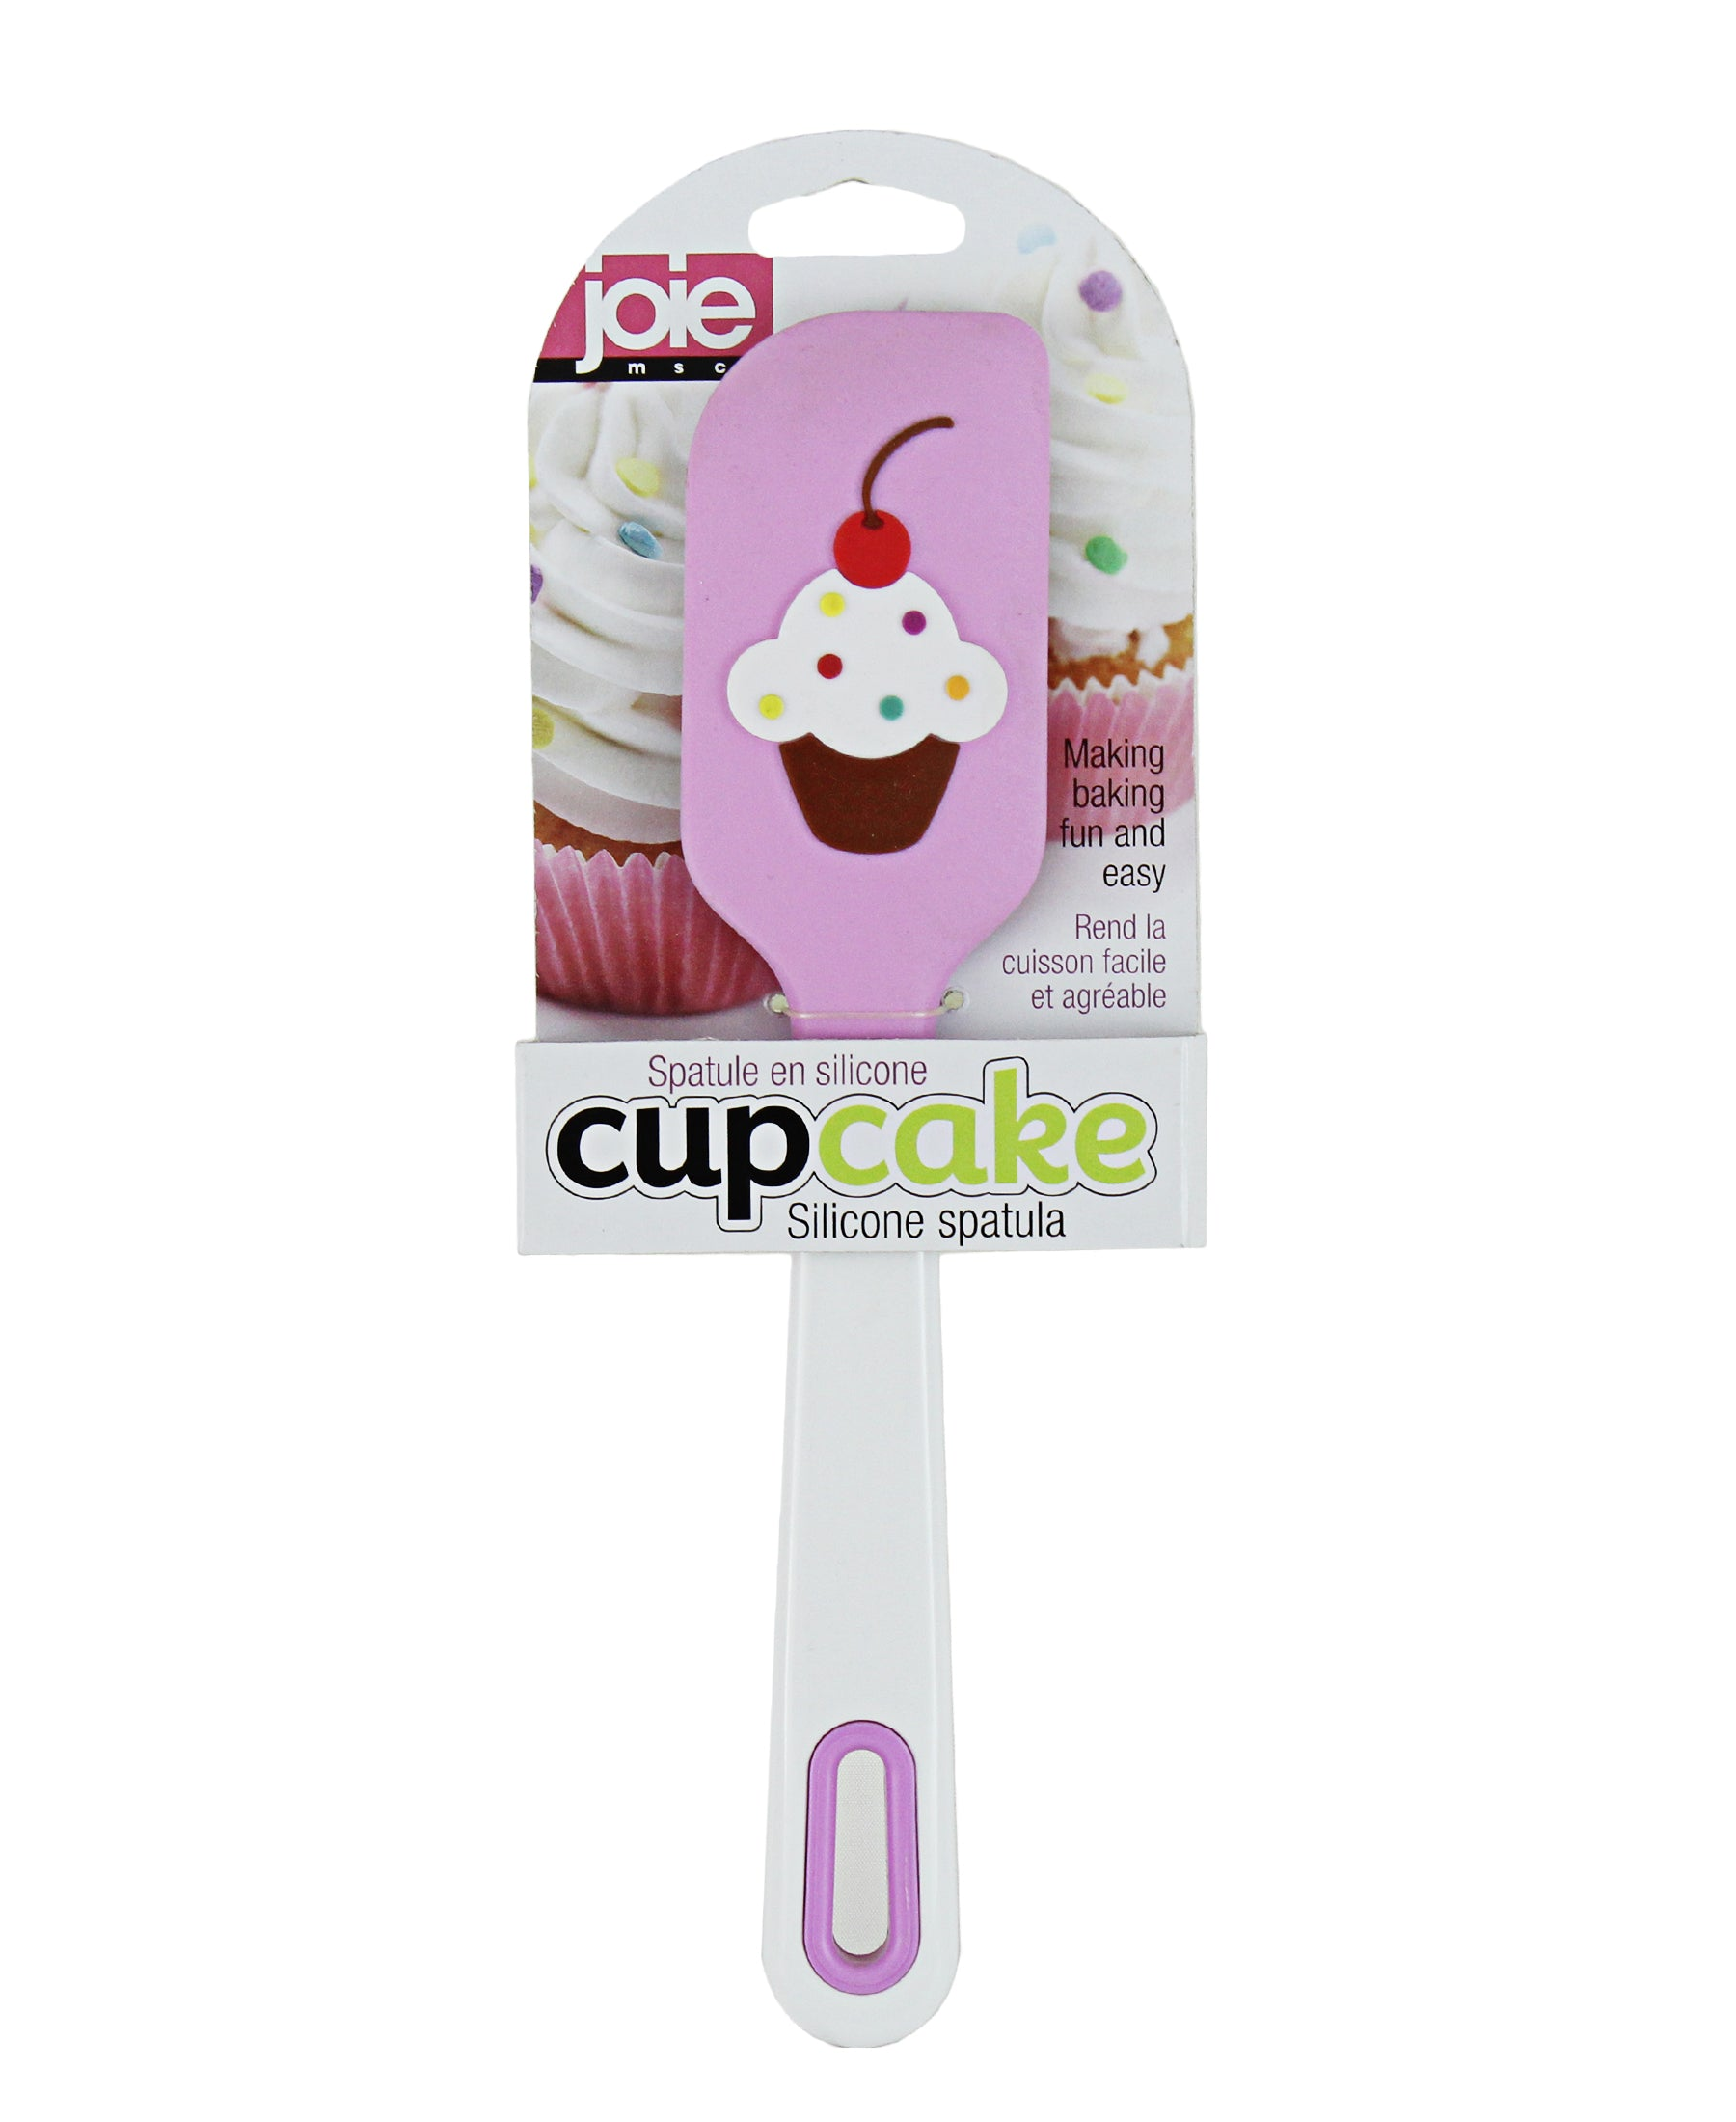 Joie Cup Cake Spatula - Pink